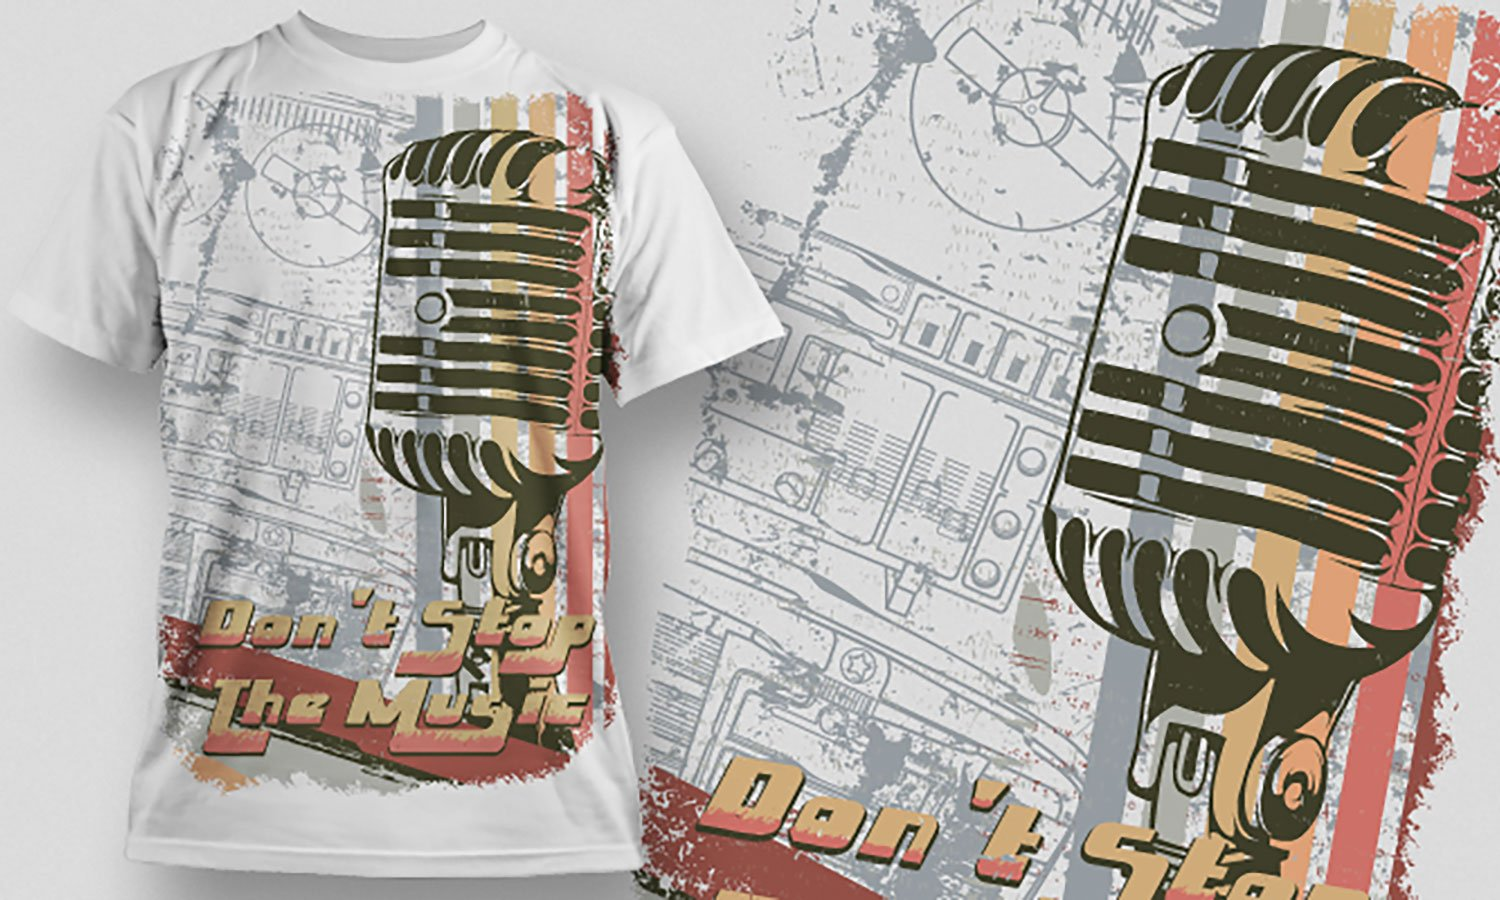 Music - Printed T-Shirt for Men, Women and Kids - TS290